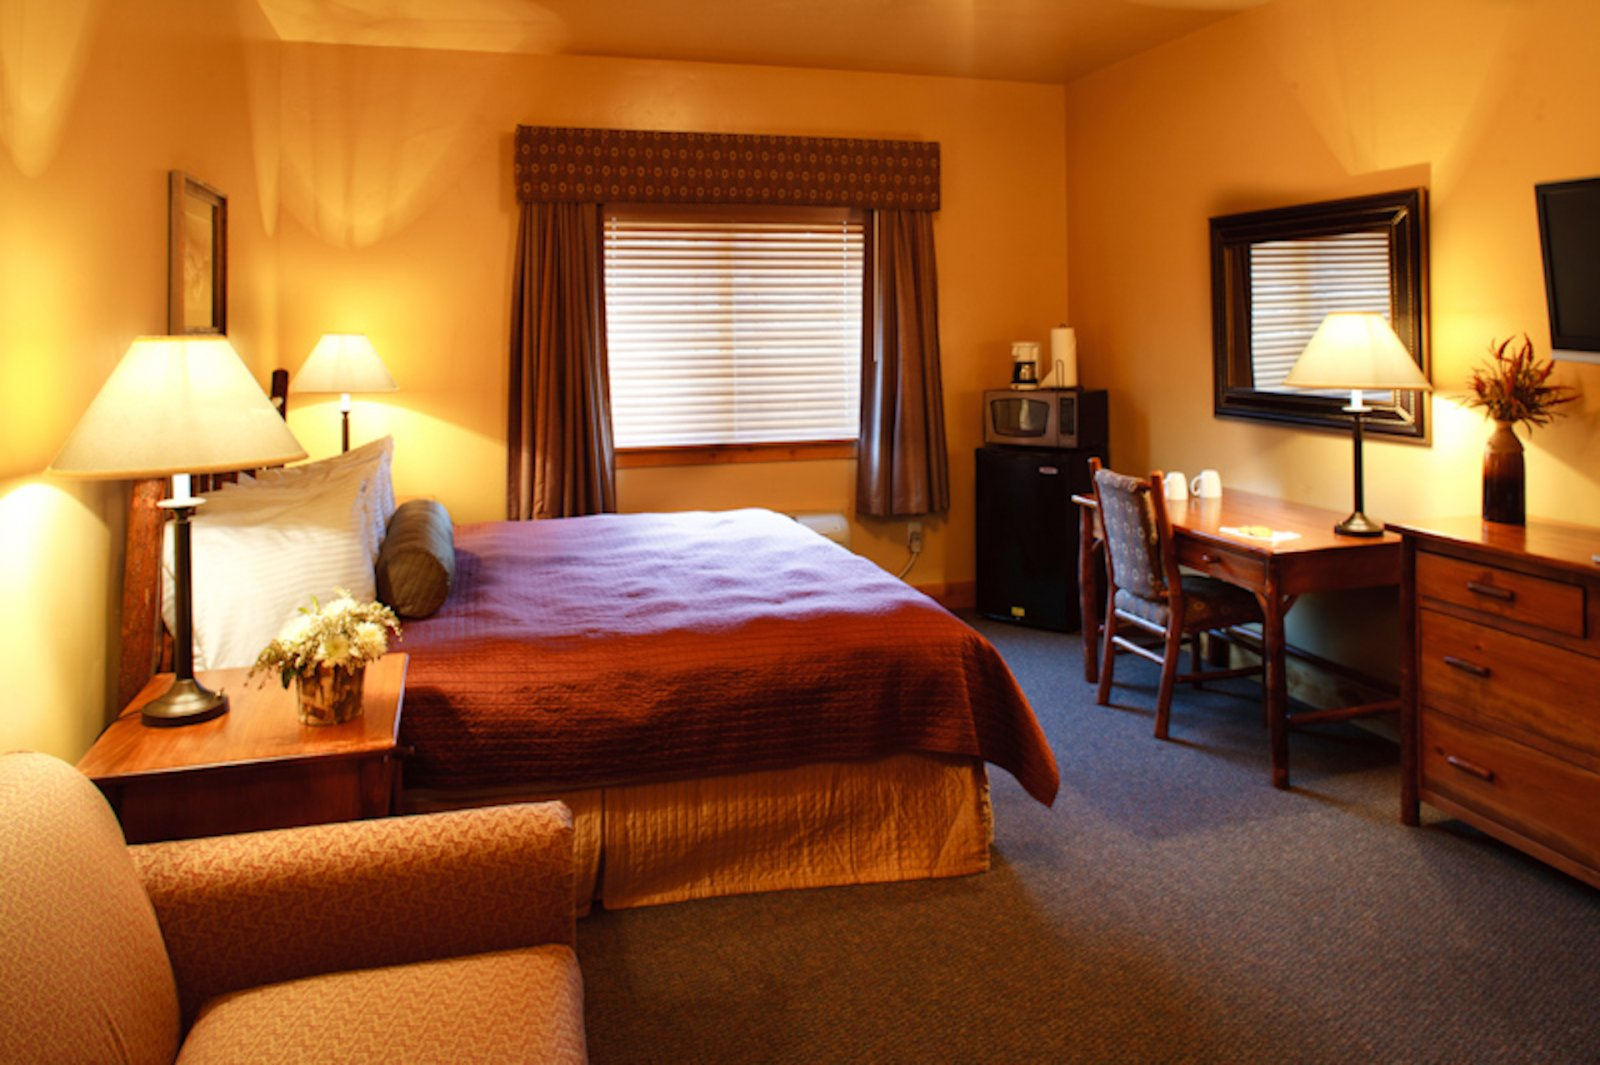 Furniture Village Jackson official cowboy village resort - town square inns